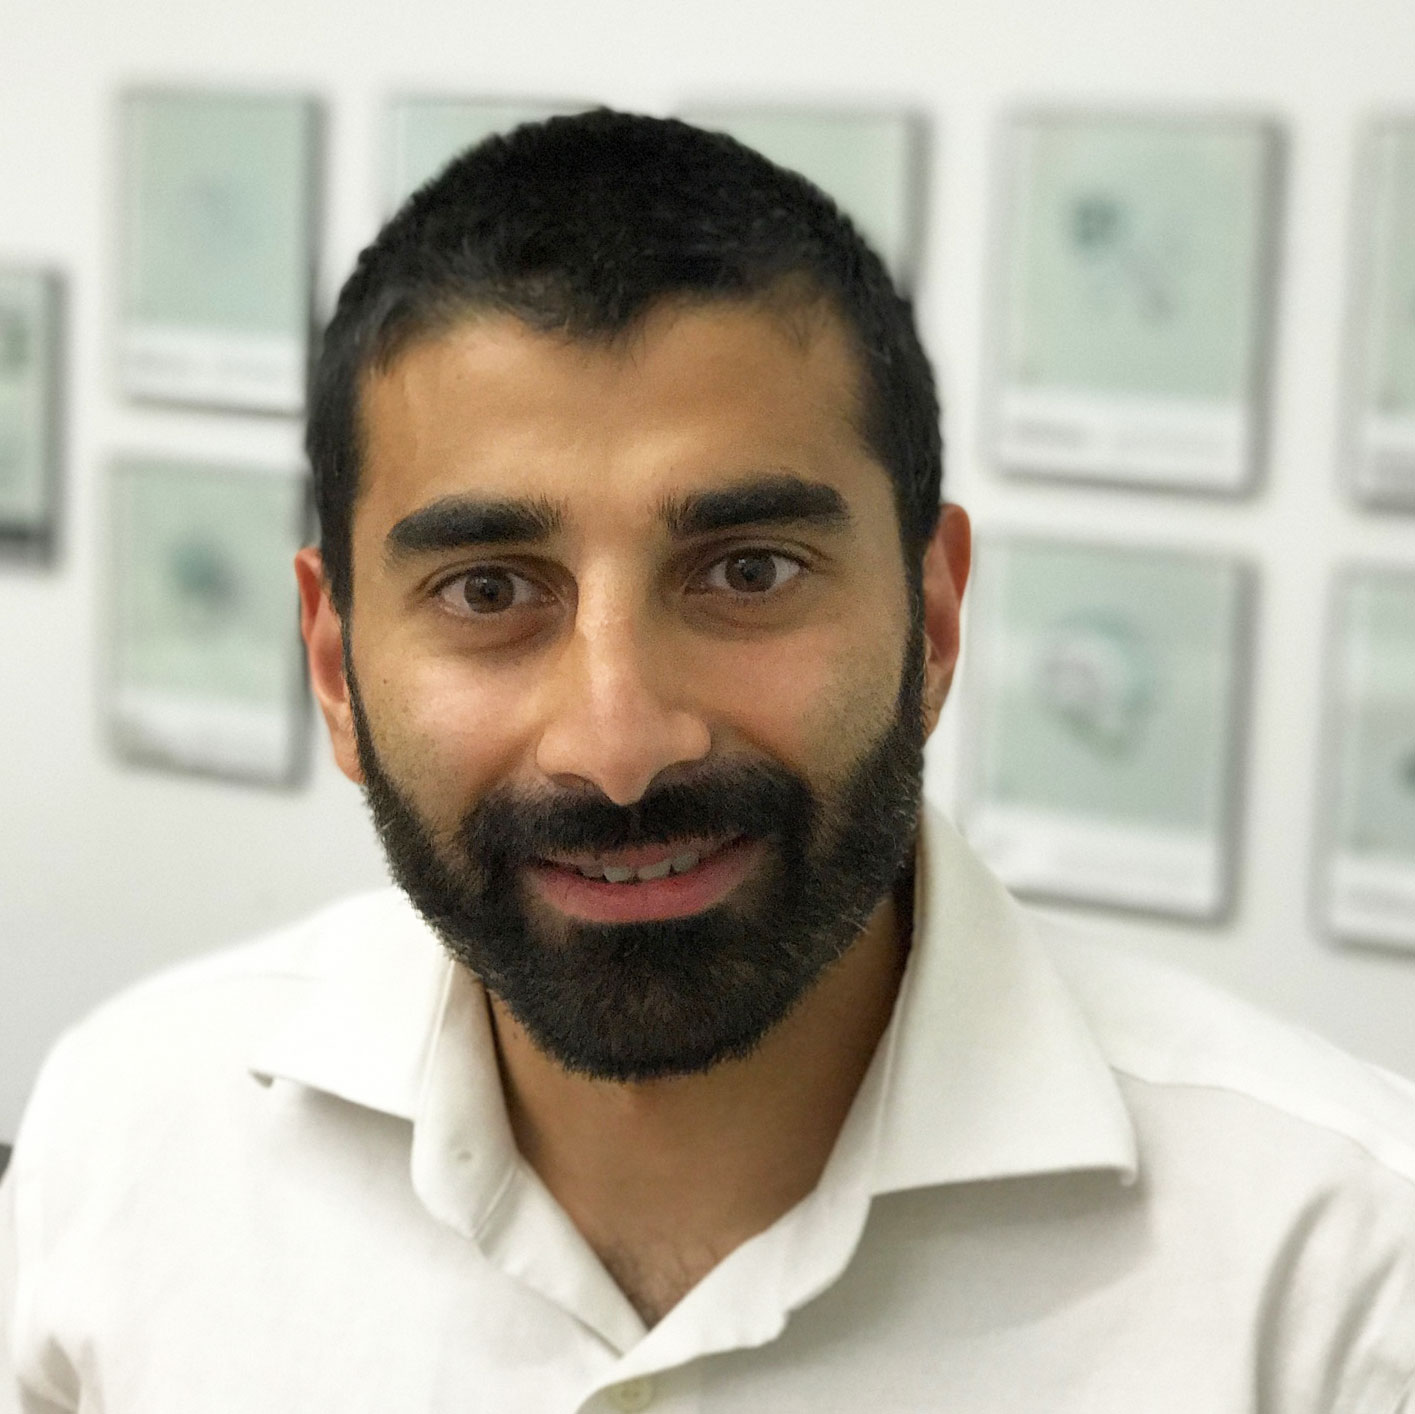 Sameer, wearing a beard and smiling